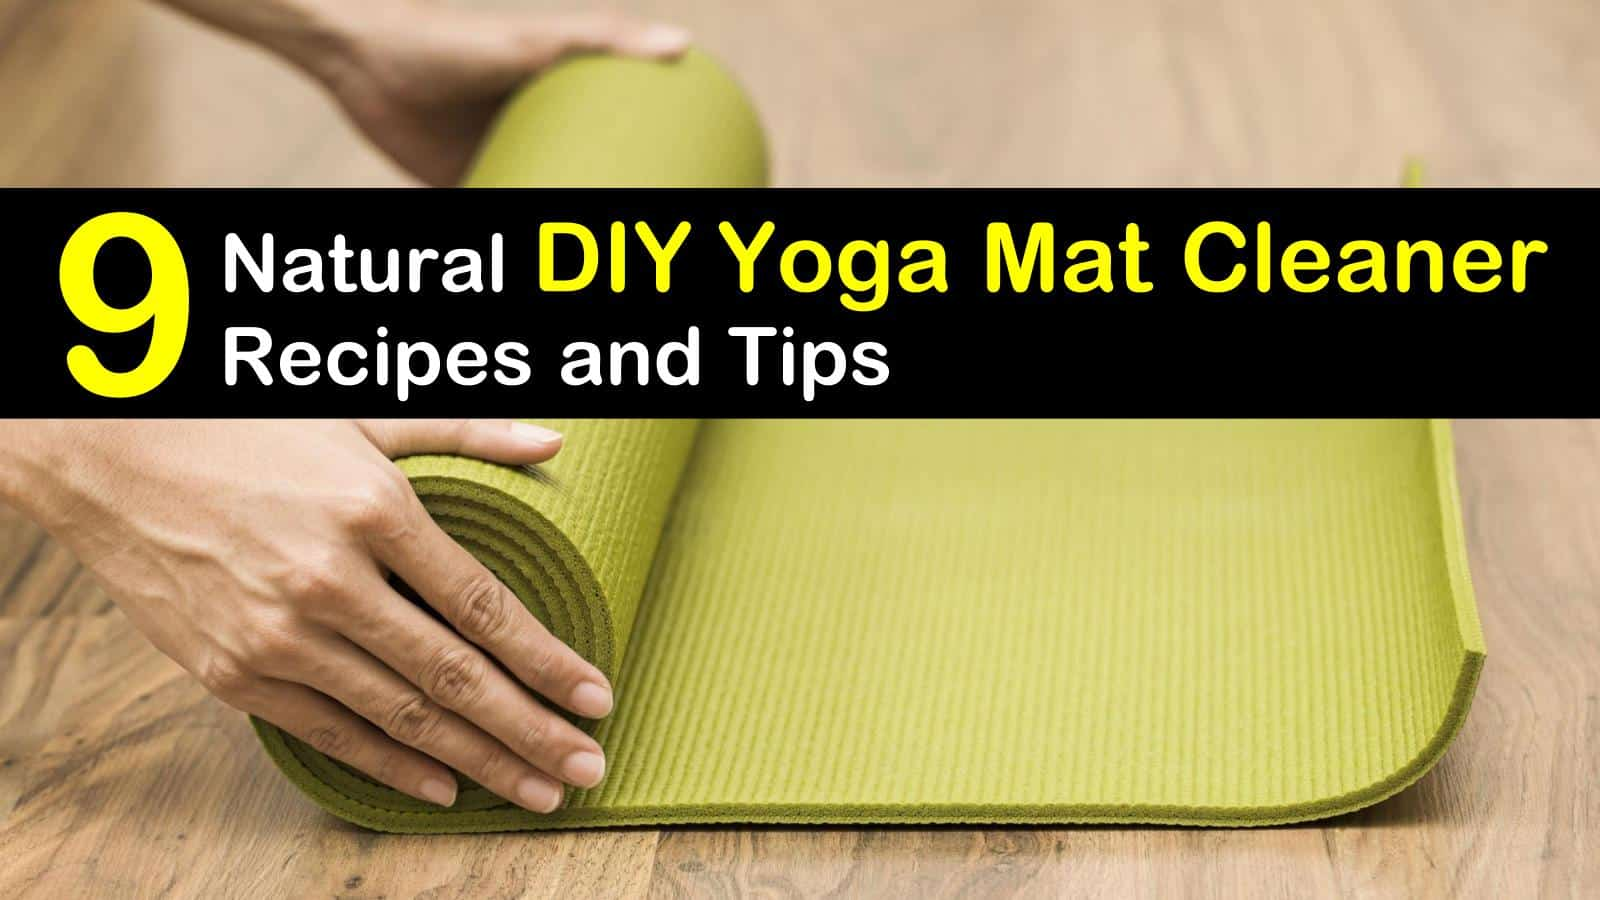 diy yoga mat cleaner titleimg1